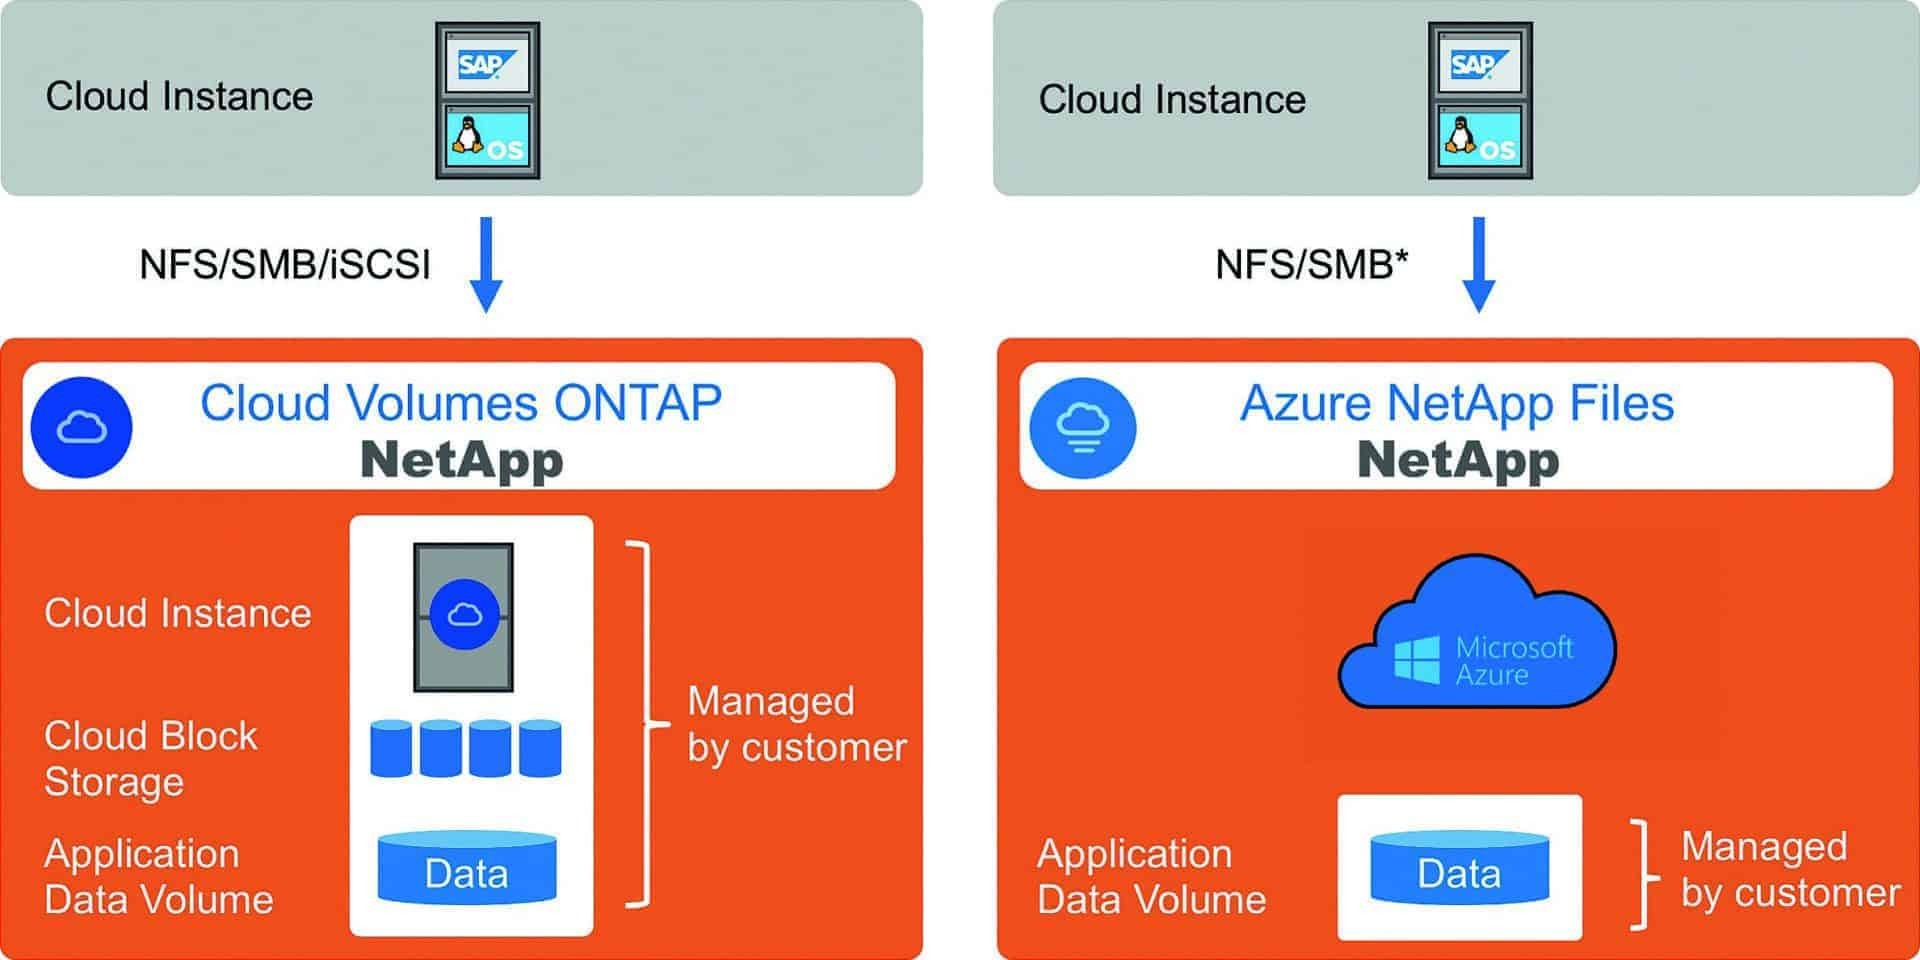 Fig. 1: Available on Microsoft Azure: Cloud Volumes Ontap and Azure NetApp Files.